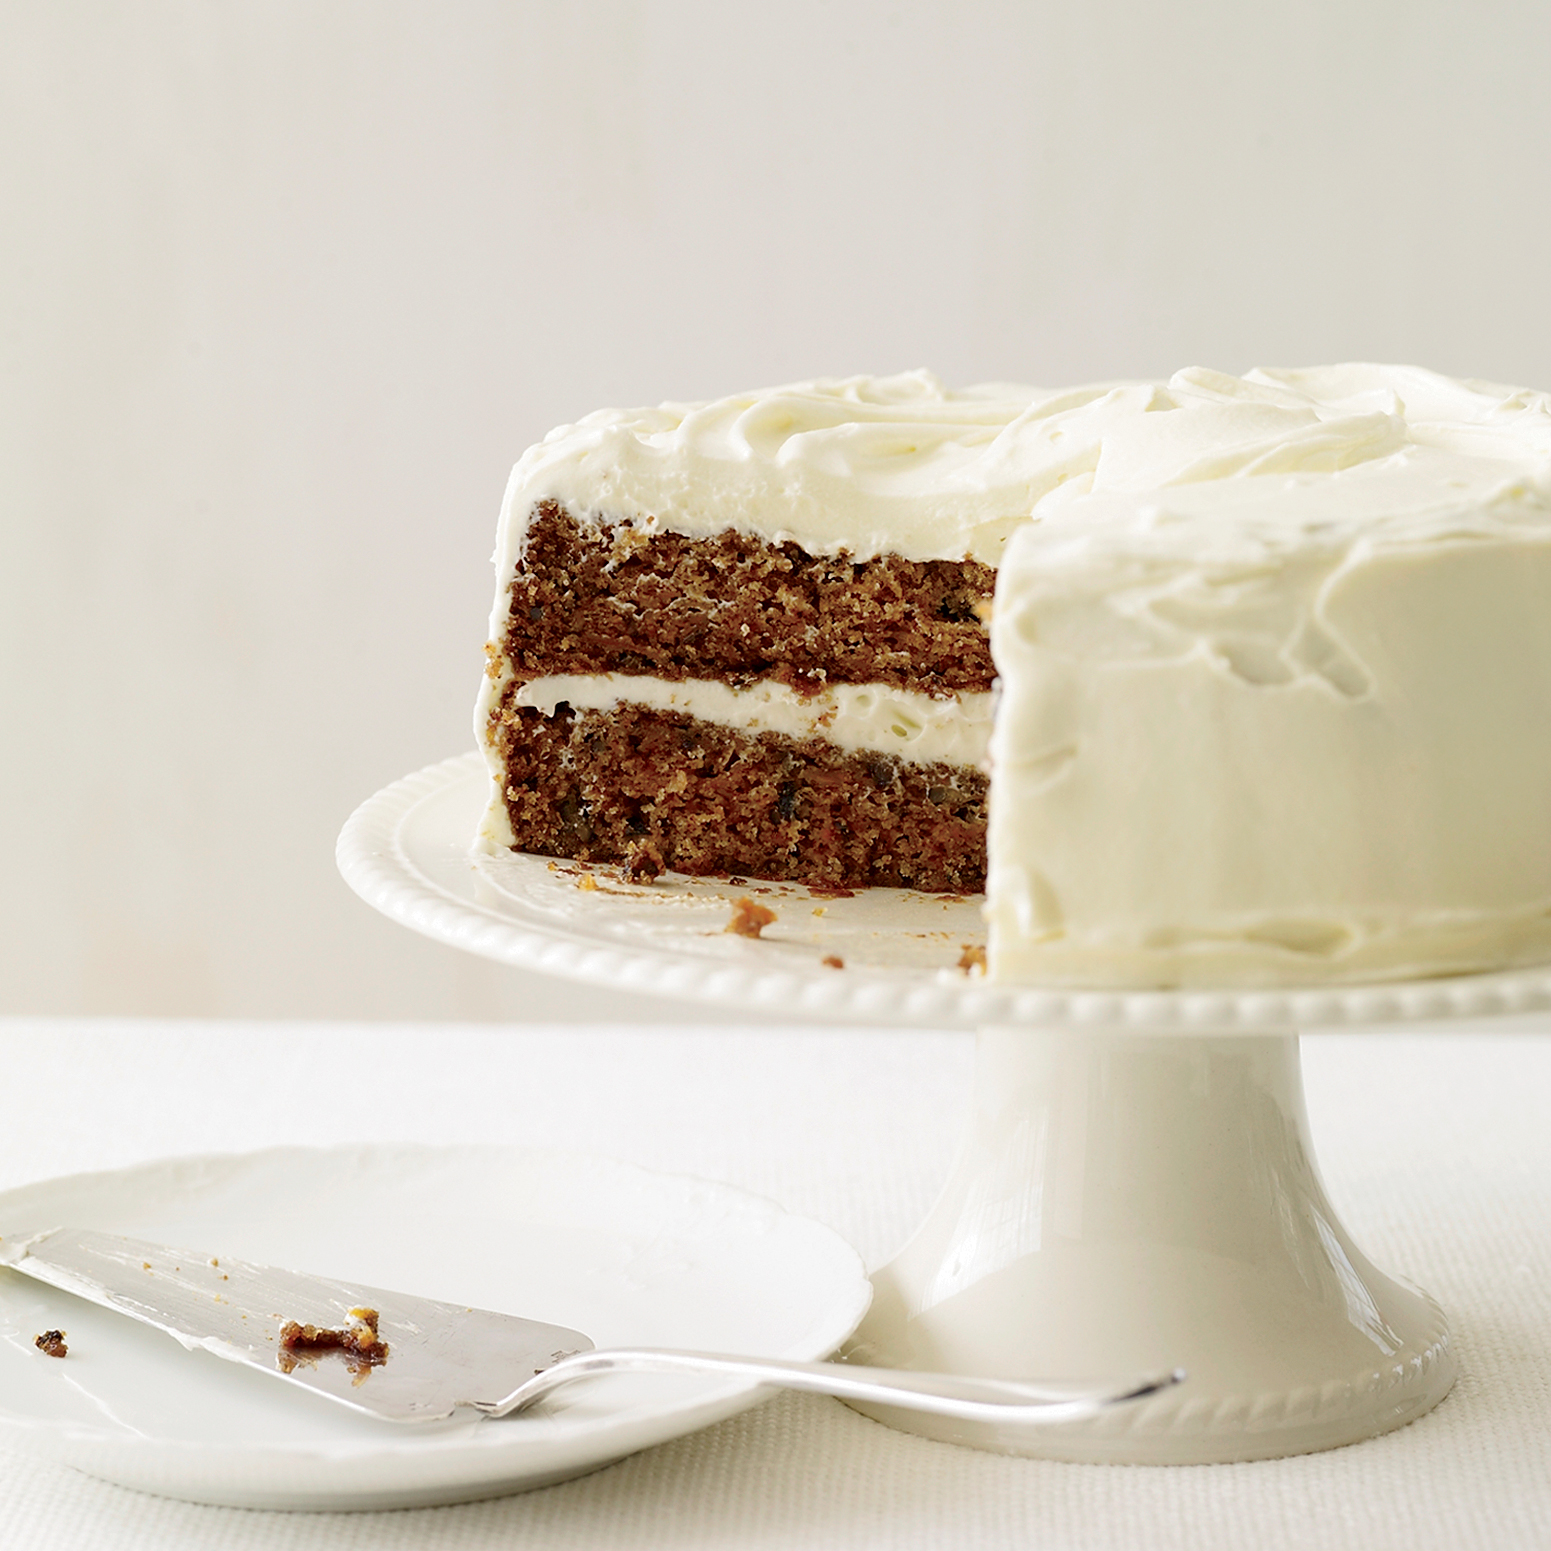 Read more on Classic carrot cake with fluffy cream cheese frosting .